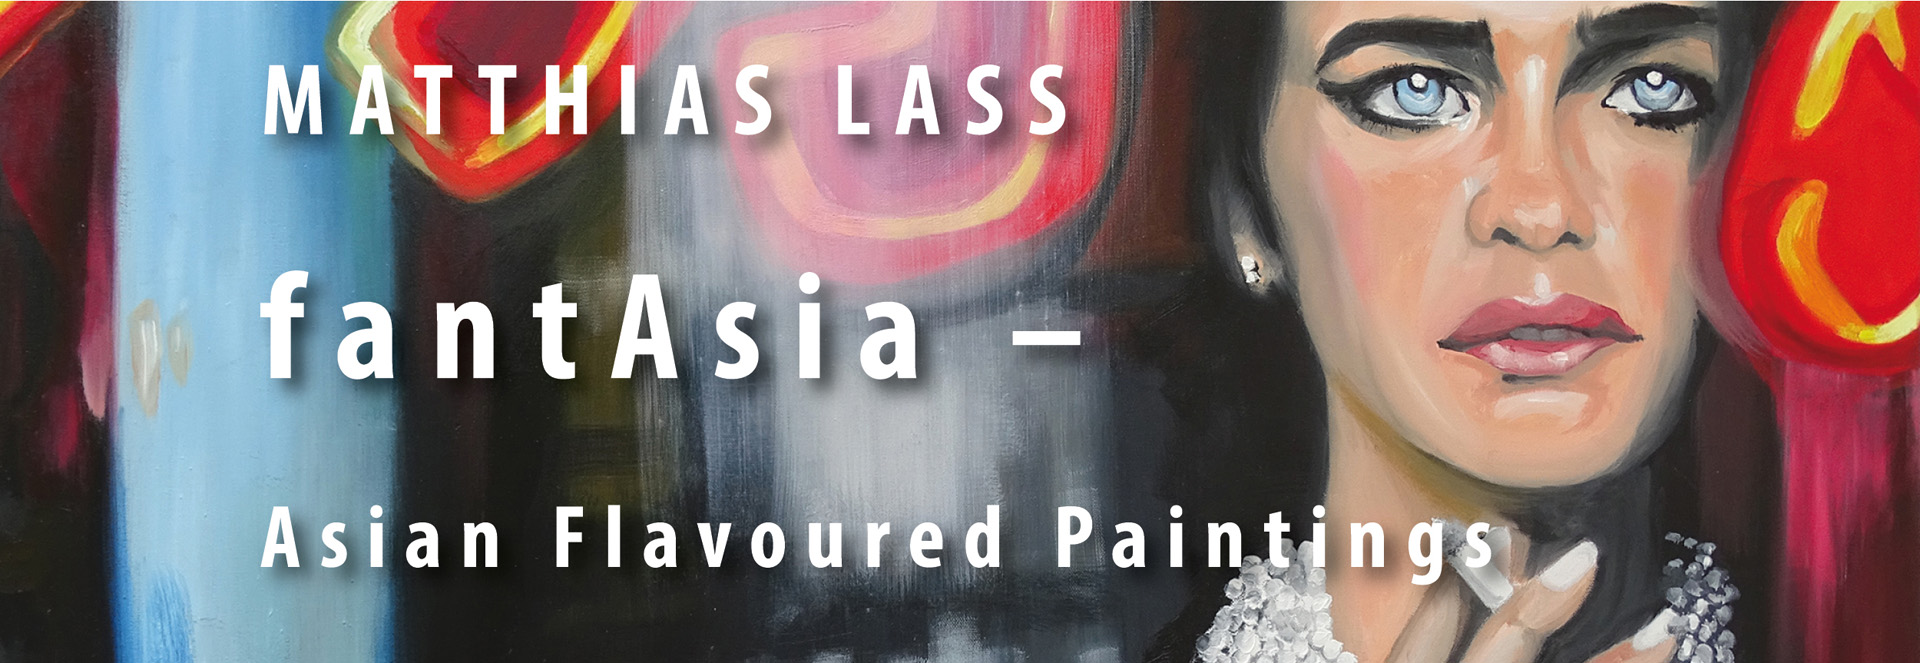 Matthias Lass   fantAsia – Asian Flavoured Paintings